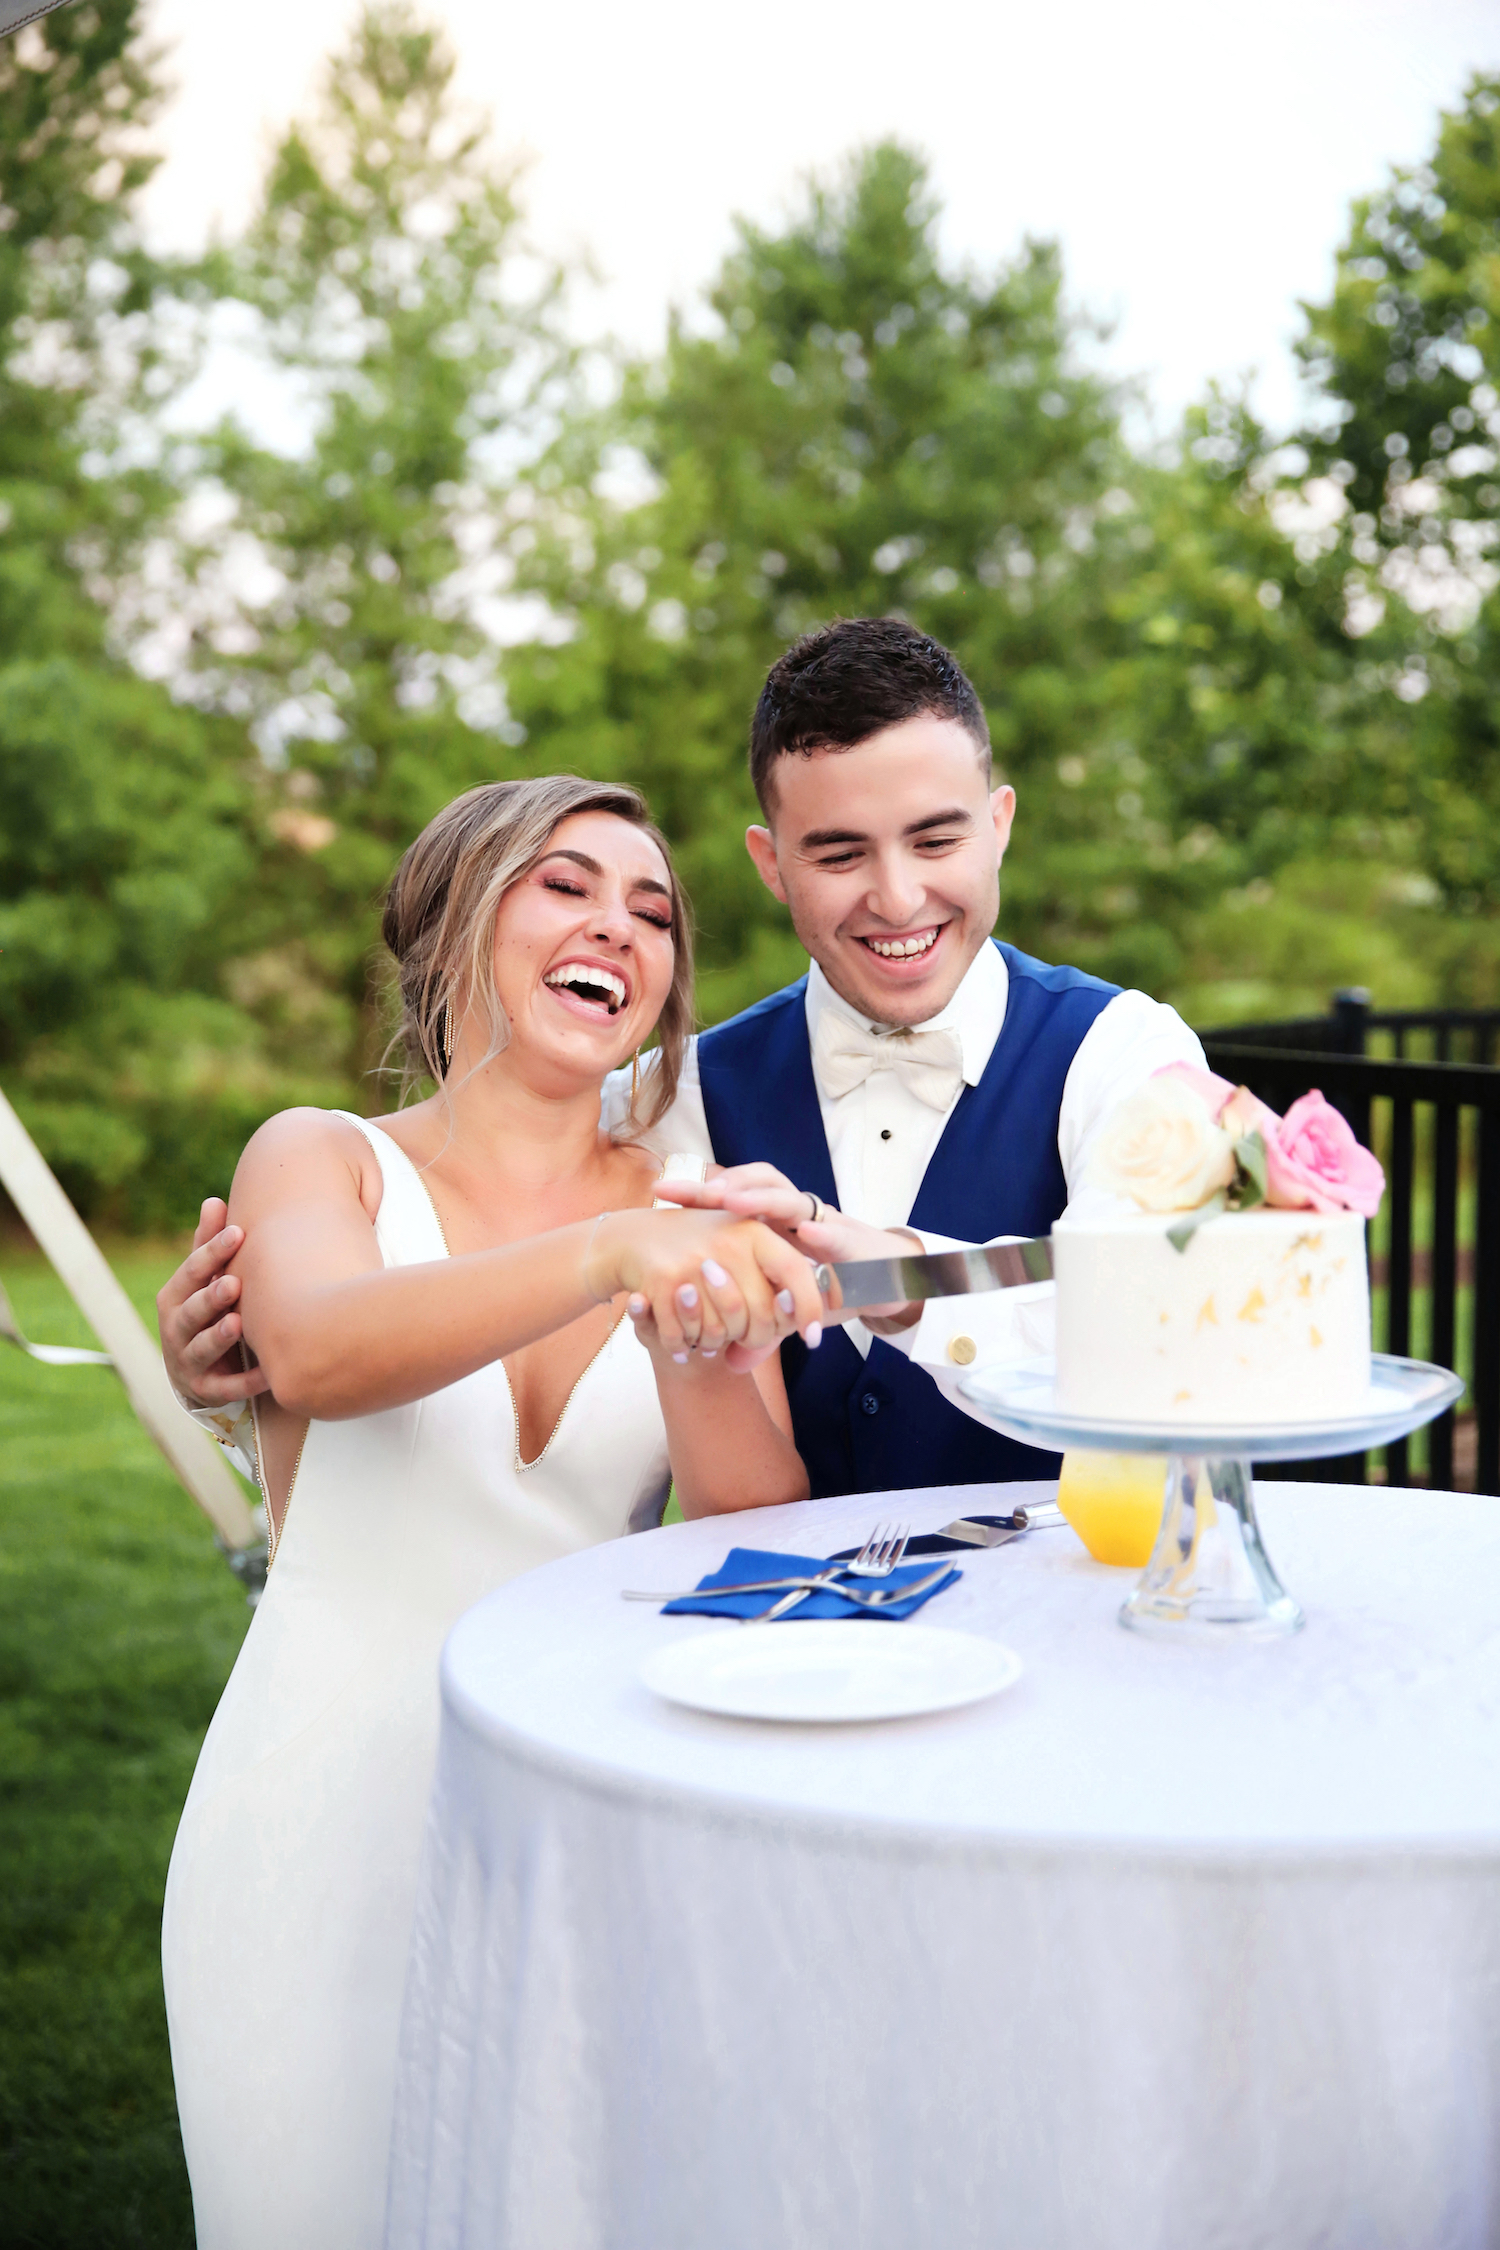 Bride and Groom smiling while cutting their cake